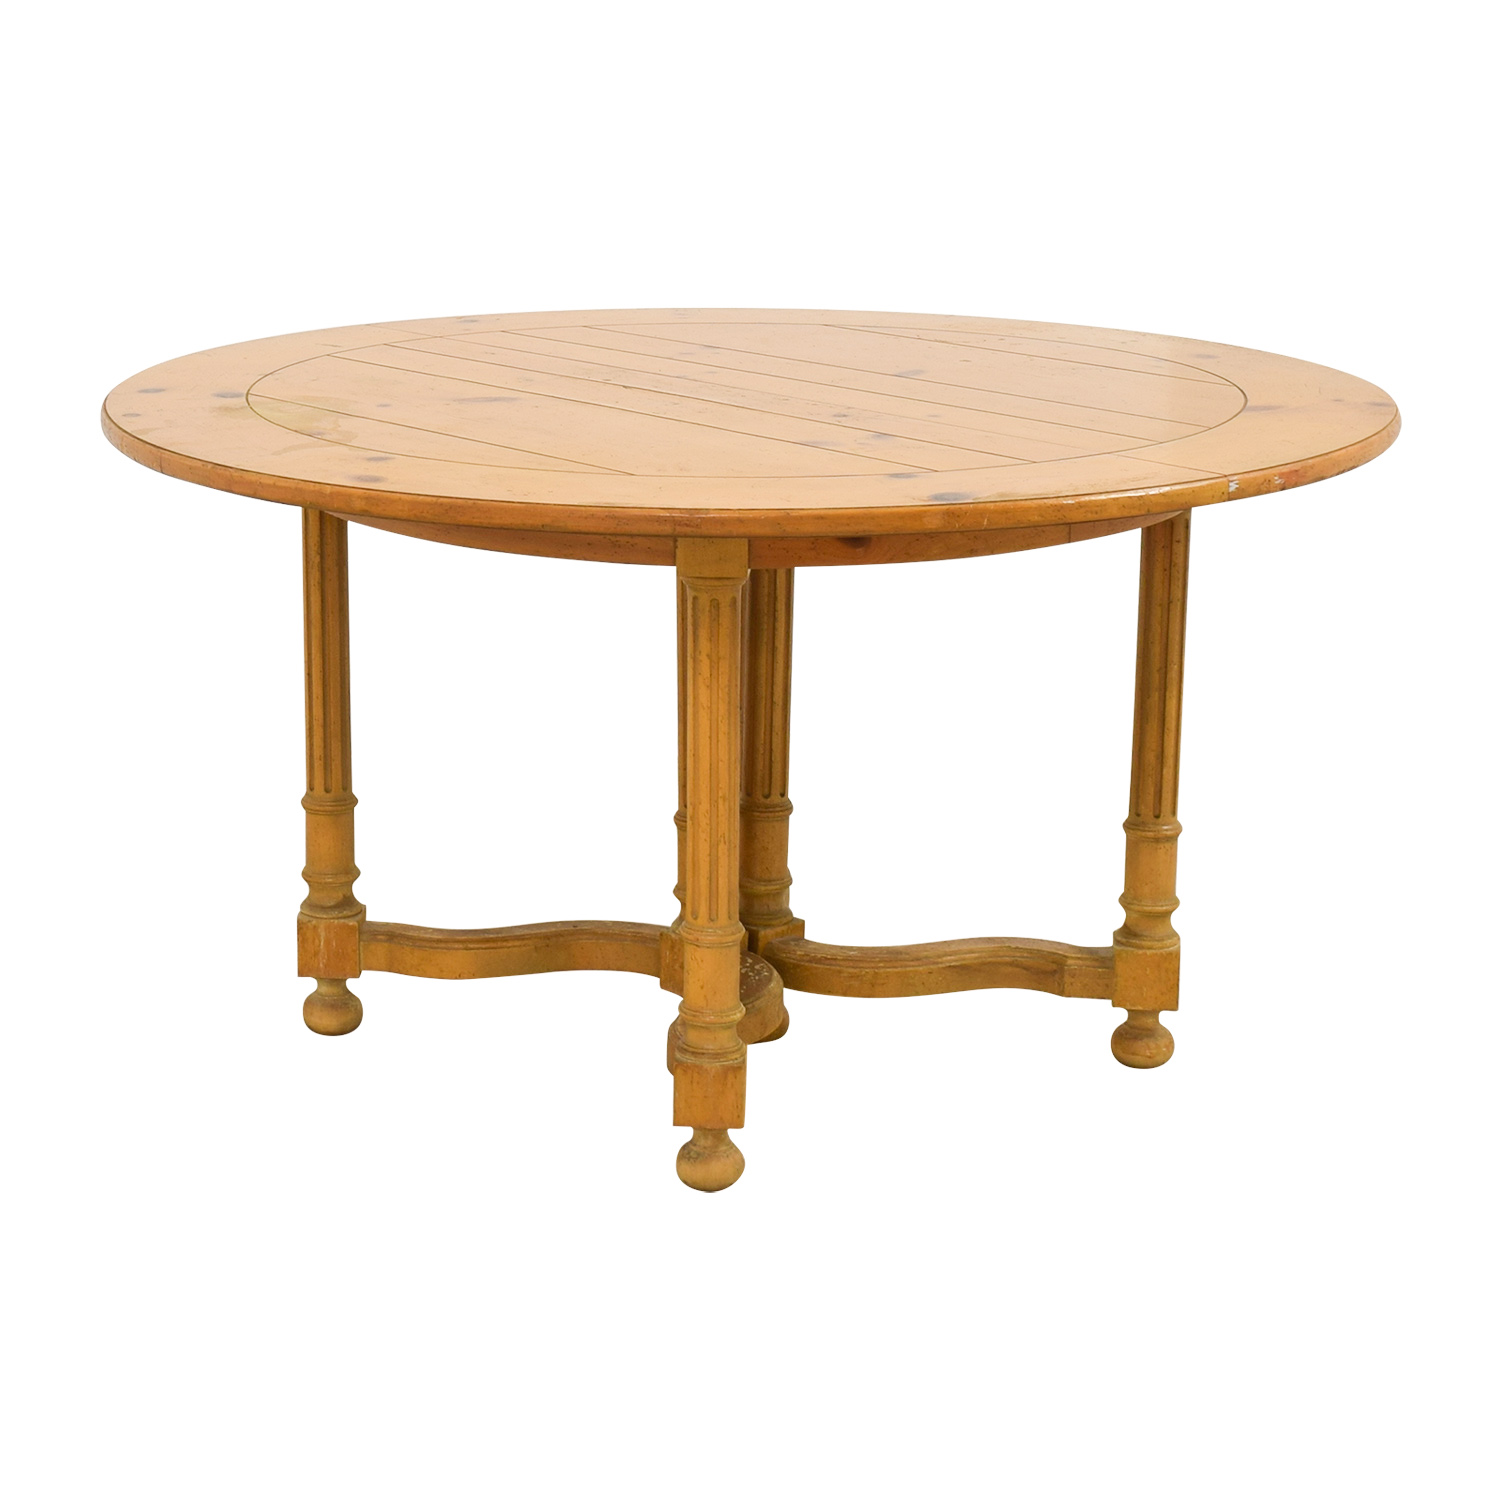 Milling Road Natural Round Table With Leaf For